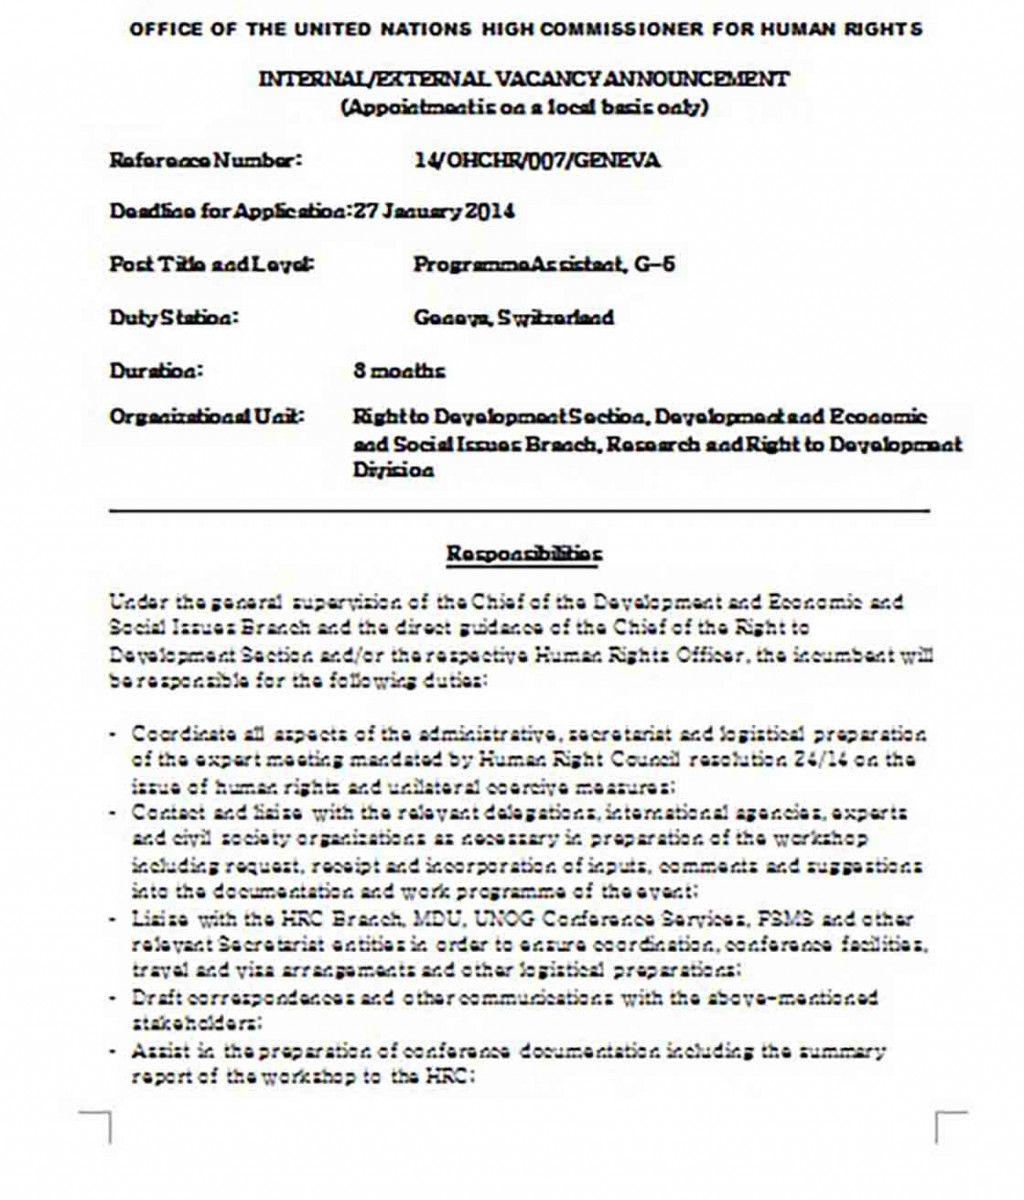 job description for a post of administrative assistant career objective quality assurance engineer simple resume format application professional word